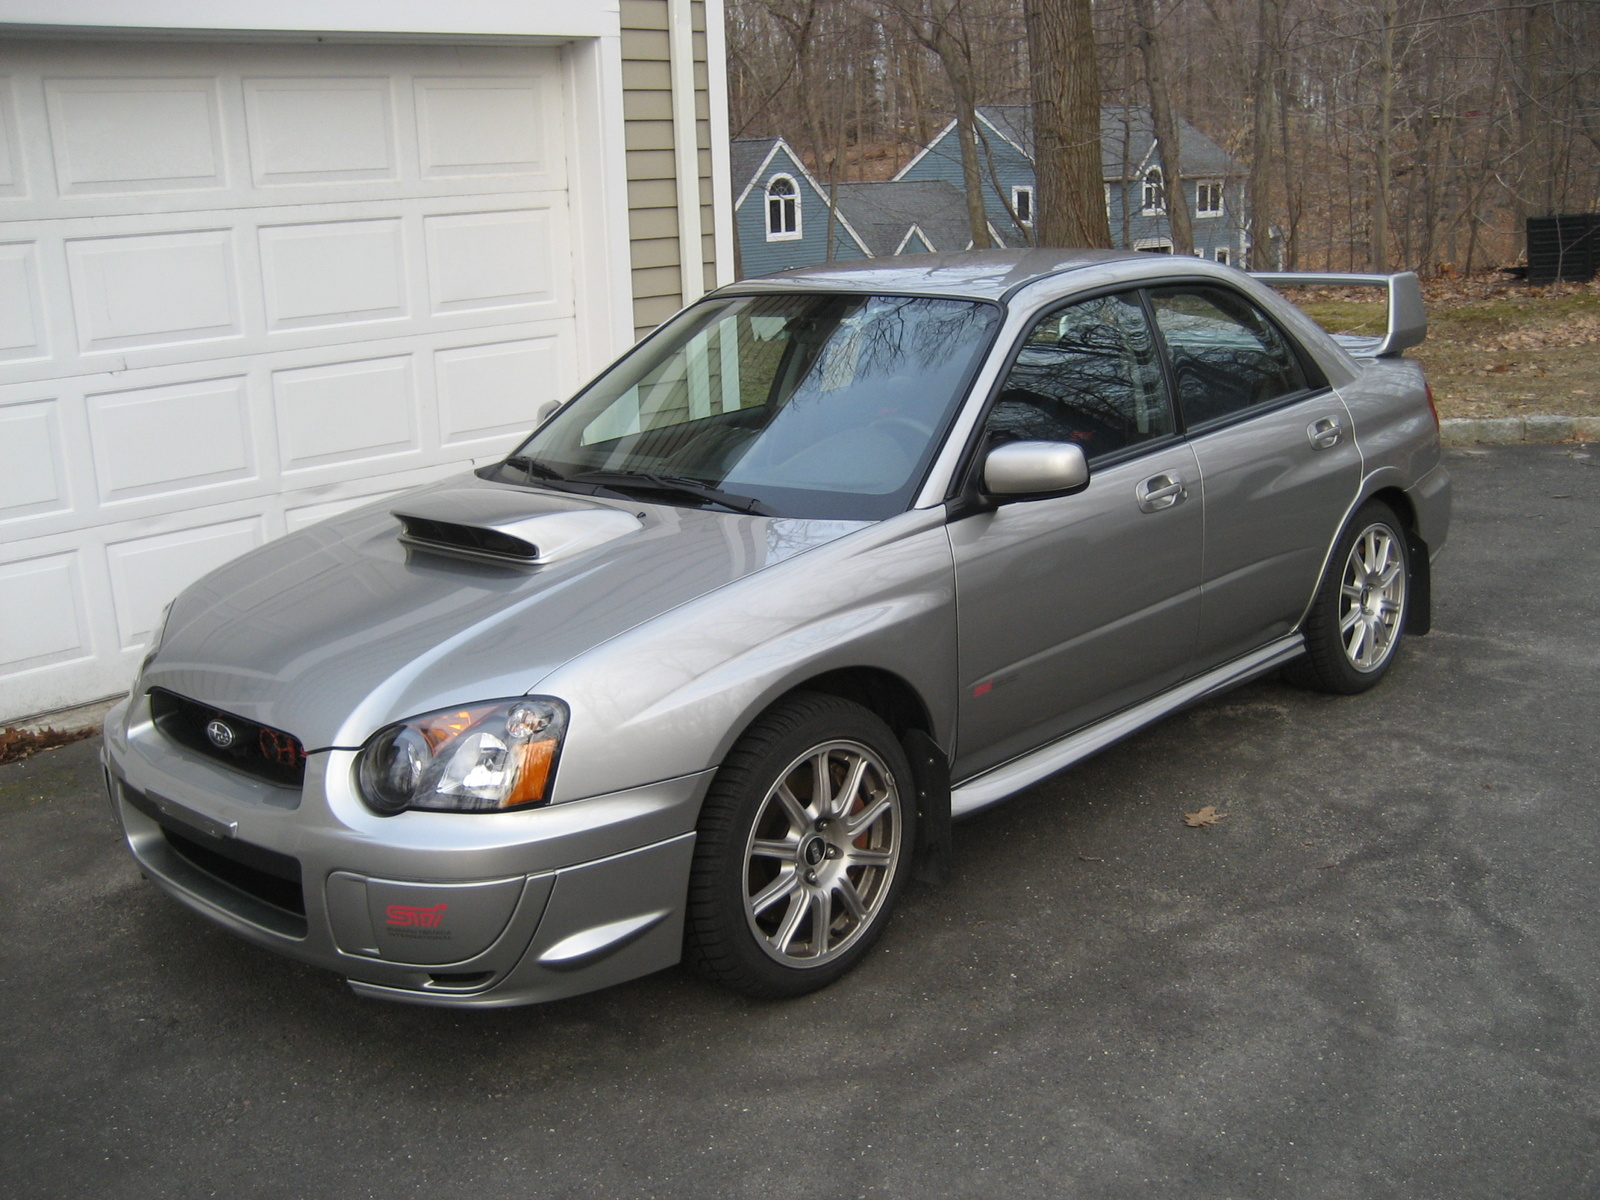 2005 subaru impreza wrx sti exterior pictures cargurus. Black Bedroom Furniture Sets. Home Design Ideas